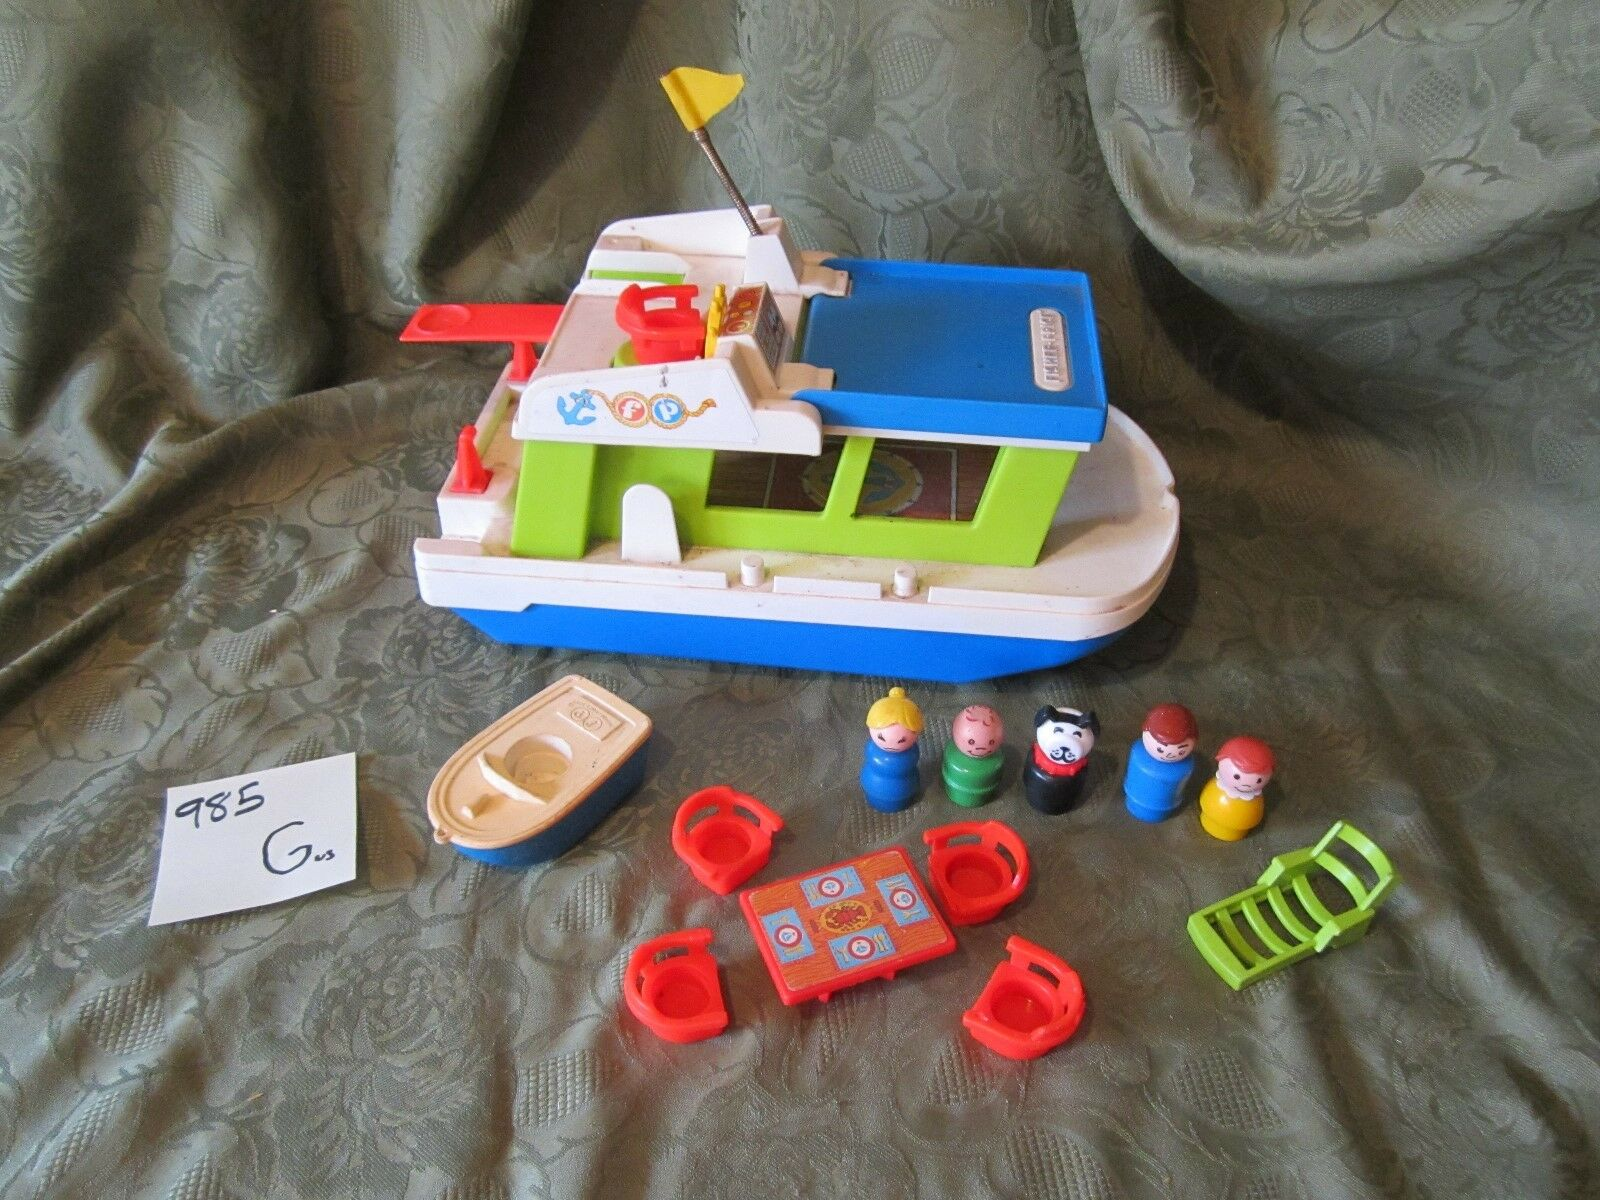 VTG Fisher Price Little People play family House Boat 985 grill boat dog mom G